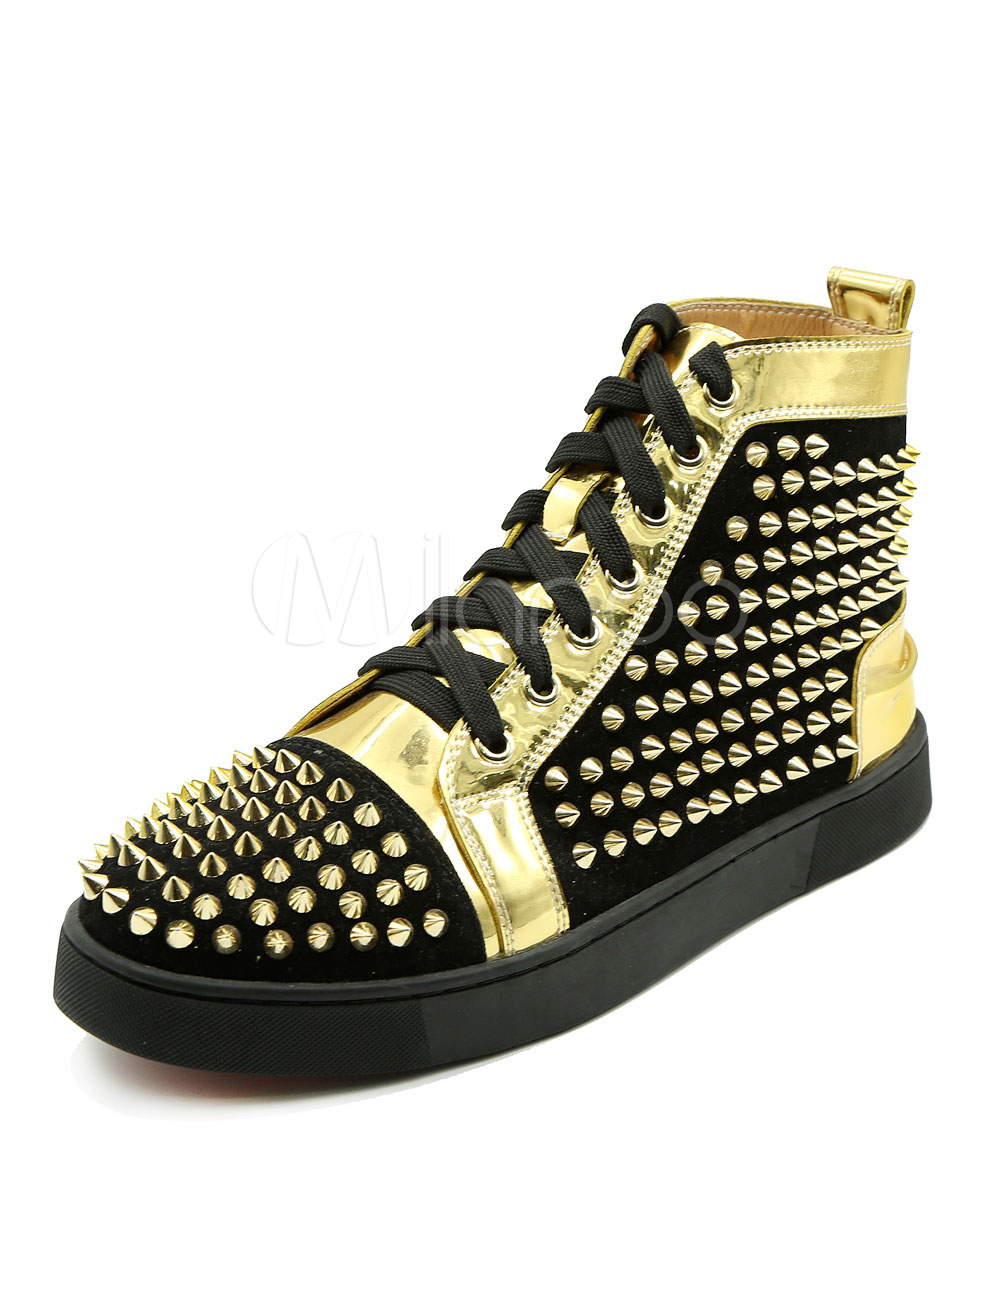 Buy Men's Black Sneakers Round Toe Lace Up Rivets High Top Skate Shoes for $94.99 in Milanoo store